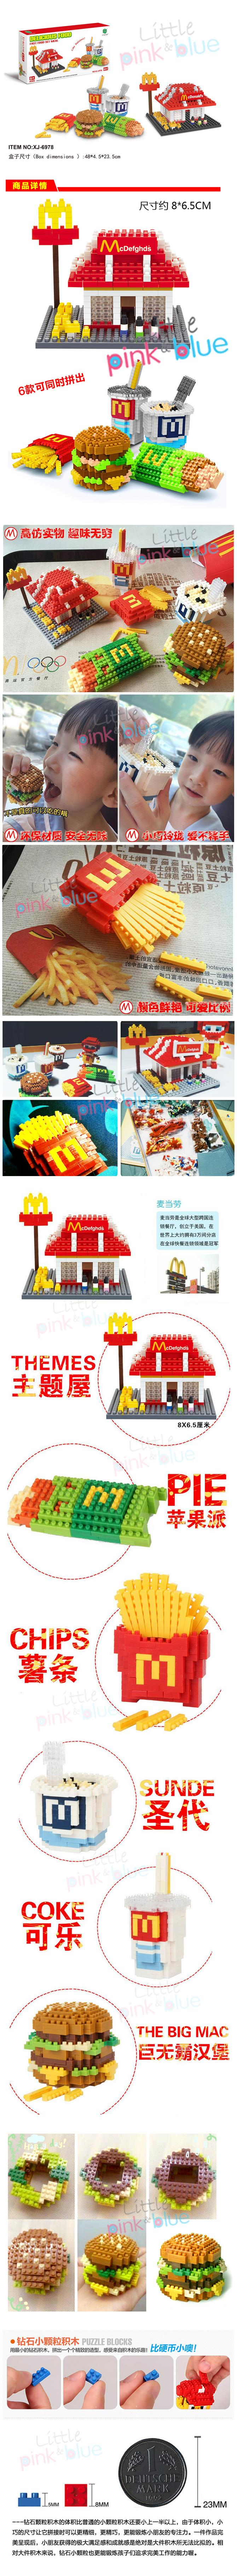 McDonald's Food Icons Nano Block Collection Limited Edition 6 in1